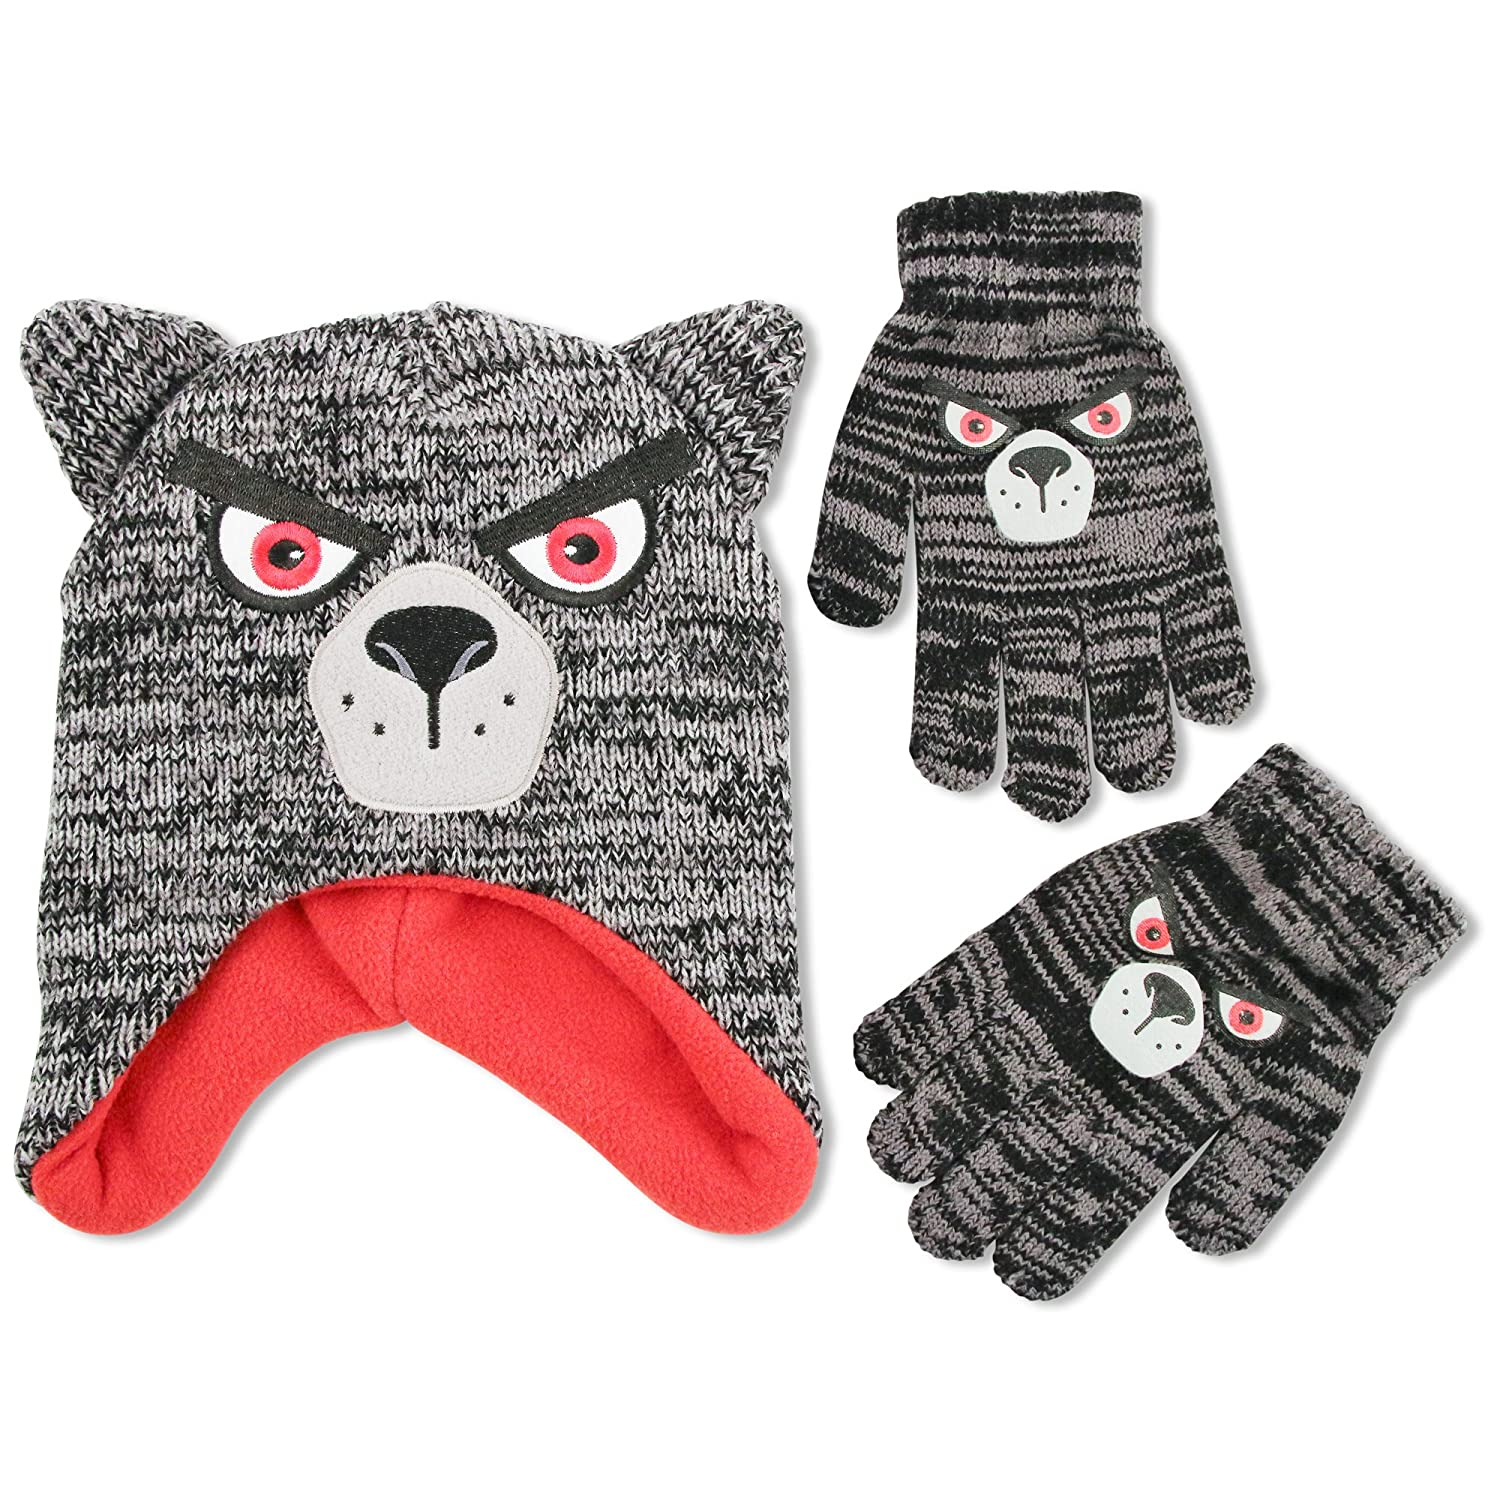 ABG Accessories Big Boys Critter Collecion Acrylic Winter Laplander Hat and Matching Glove Set black One Size Fits Most GNF59730AZ